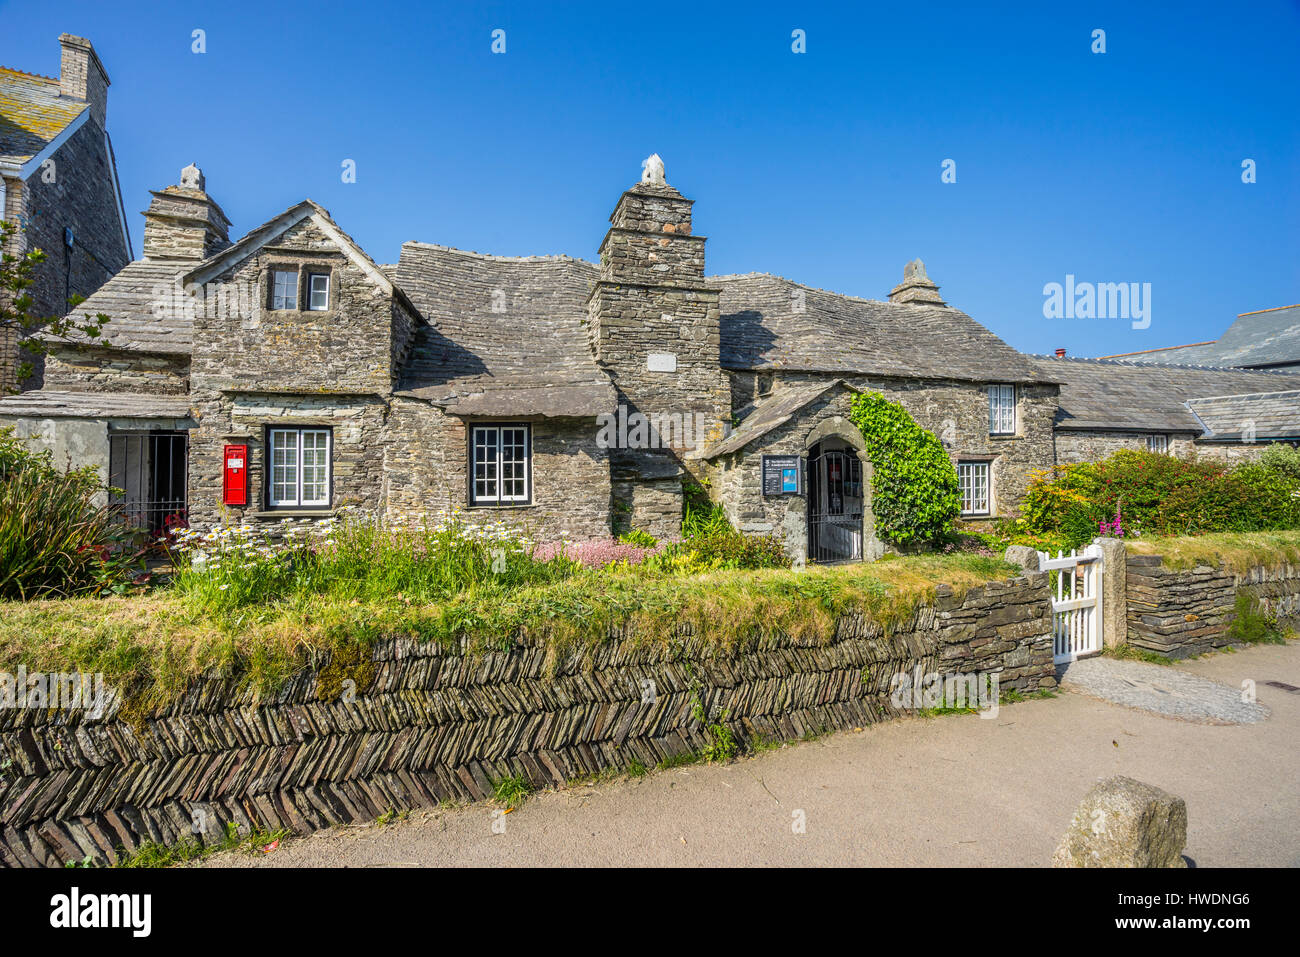 United Kingdom, South West England, Cornwall, the medieval hall-house of 14th century Tintagel Old Post Office - Stock Image